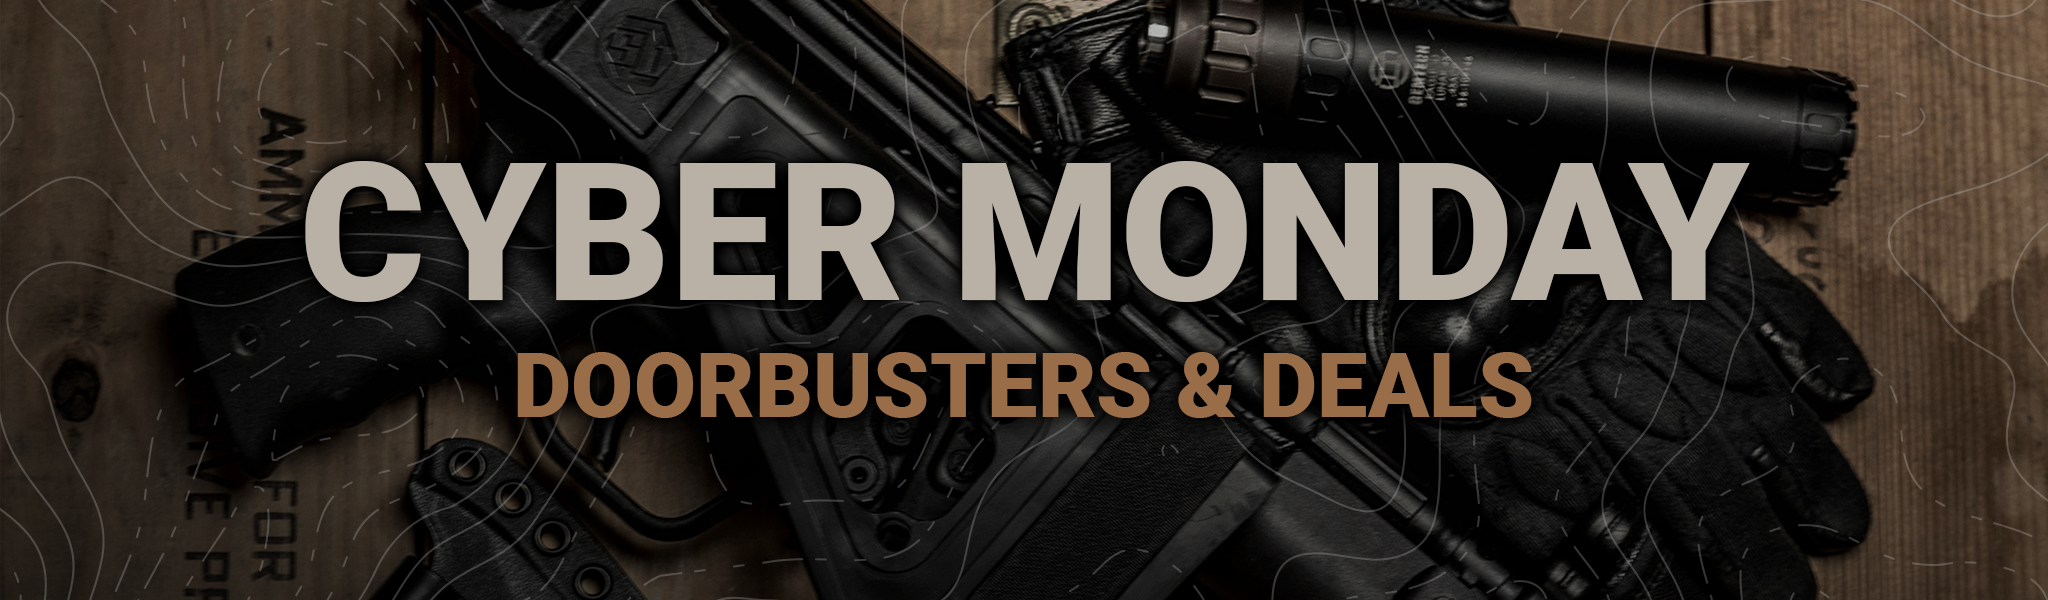 Cyber Monday Flash Sale 1 Banner